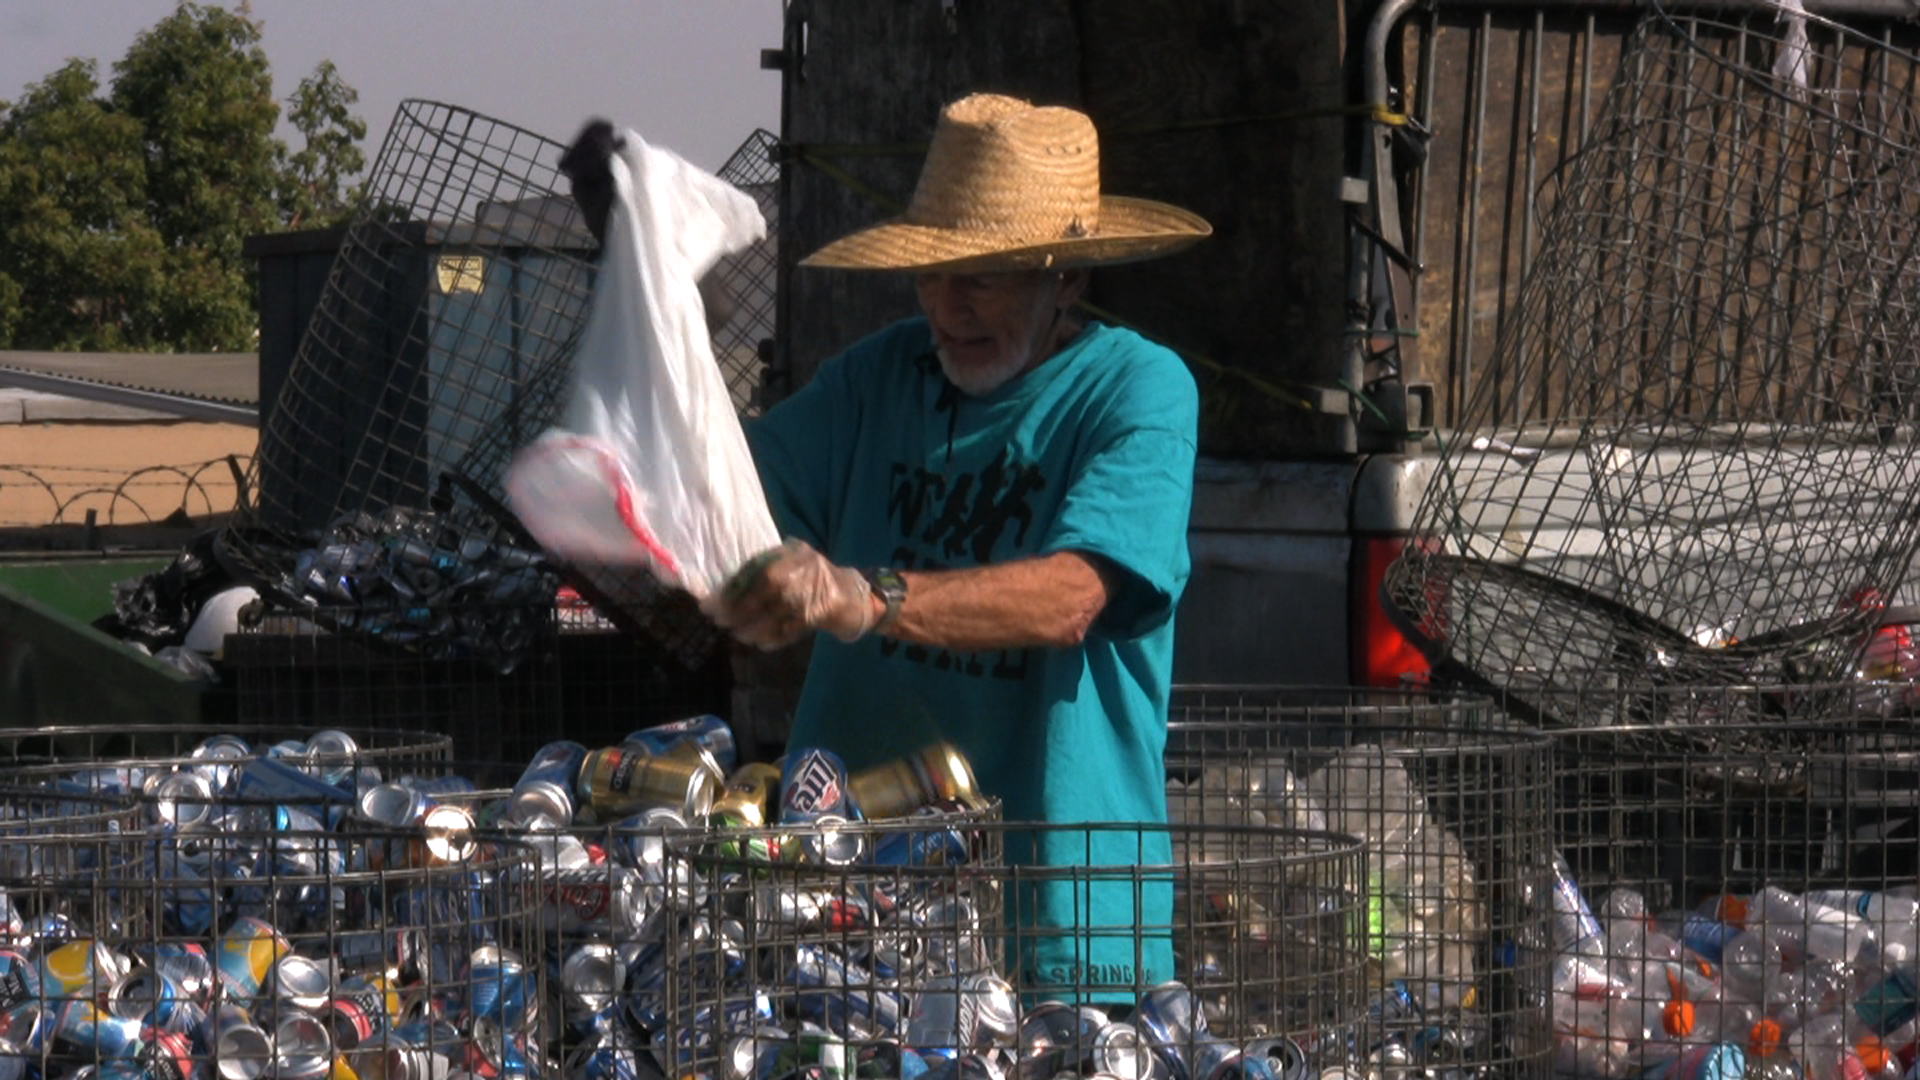 Meet Don -- he recycles cans for a living.